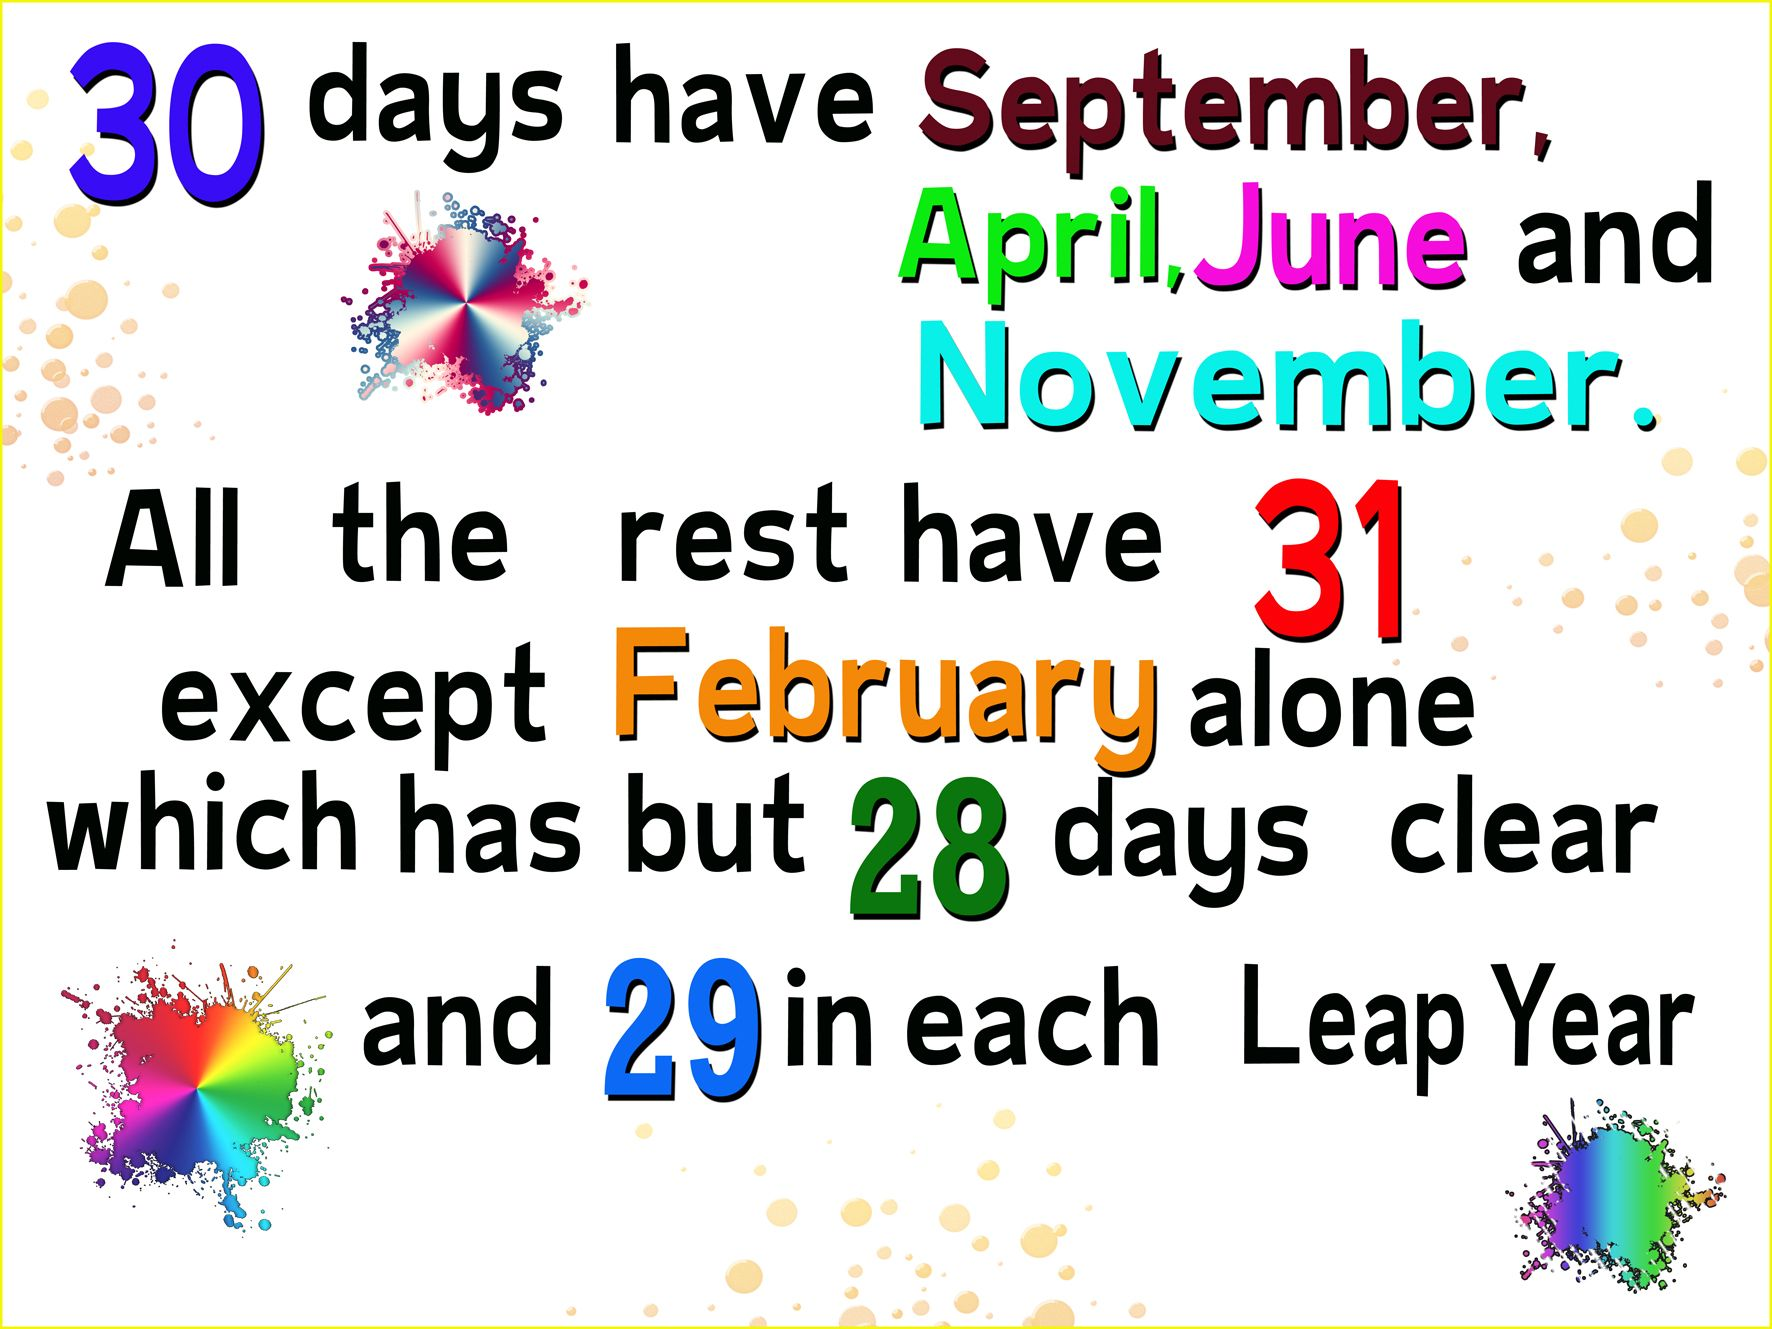 image about Thirty Days Hath September Poem Printable known as 30 times hath september printable poem - Google Glance 30